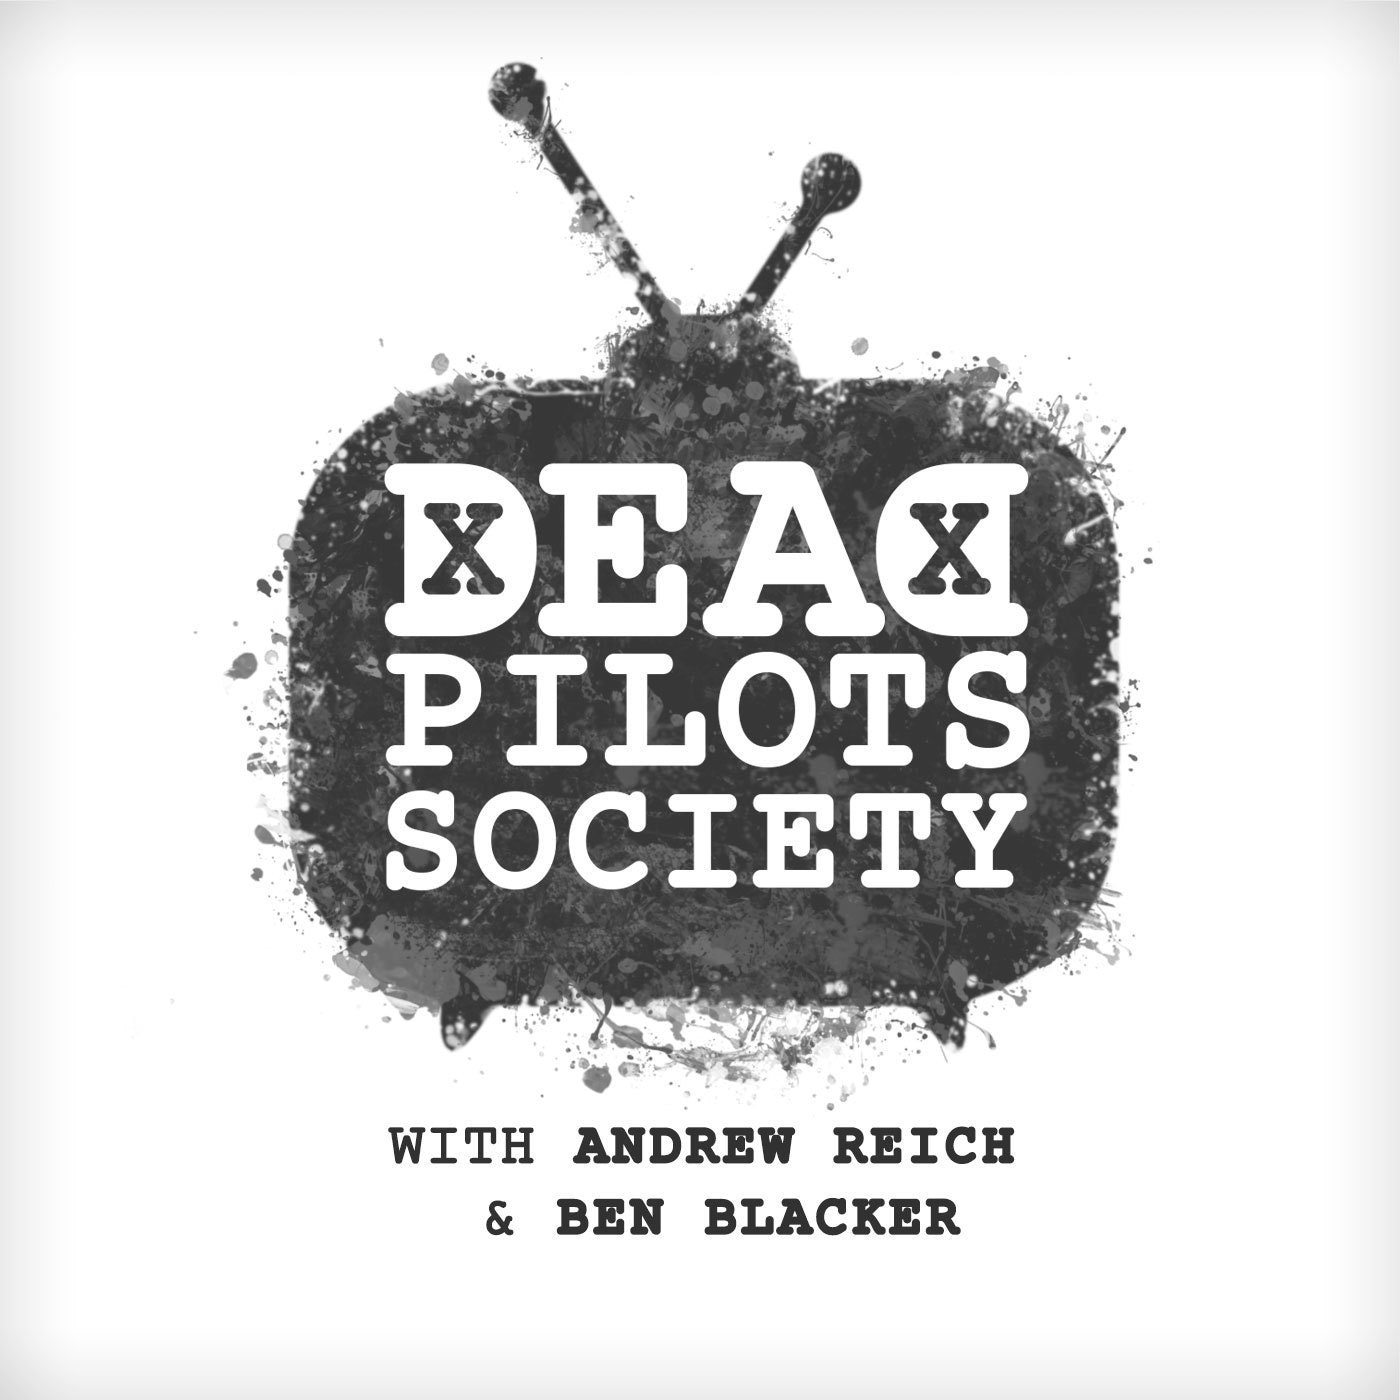 Dead Pilots SocietyEpisode 1 - Formosa(September 15th, 2016) - In this pilot episode of Dead Pilots Society, Ben Blacker interviews Thomas Lennon & Robert Ben Garant (Reno 911, The State, The Night At The Museum Films) regarding their dead pilot, Formosa. You'll also listen to a never-before-heard live table read of Formosa performed by some of today's funniest comedic actors.